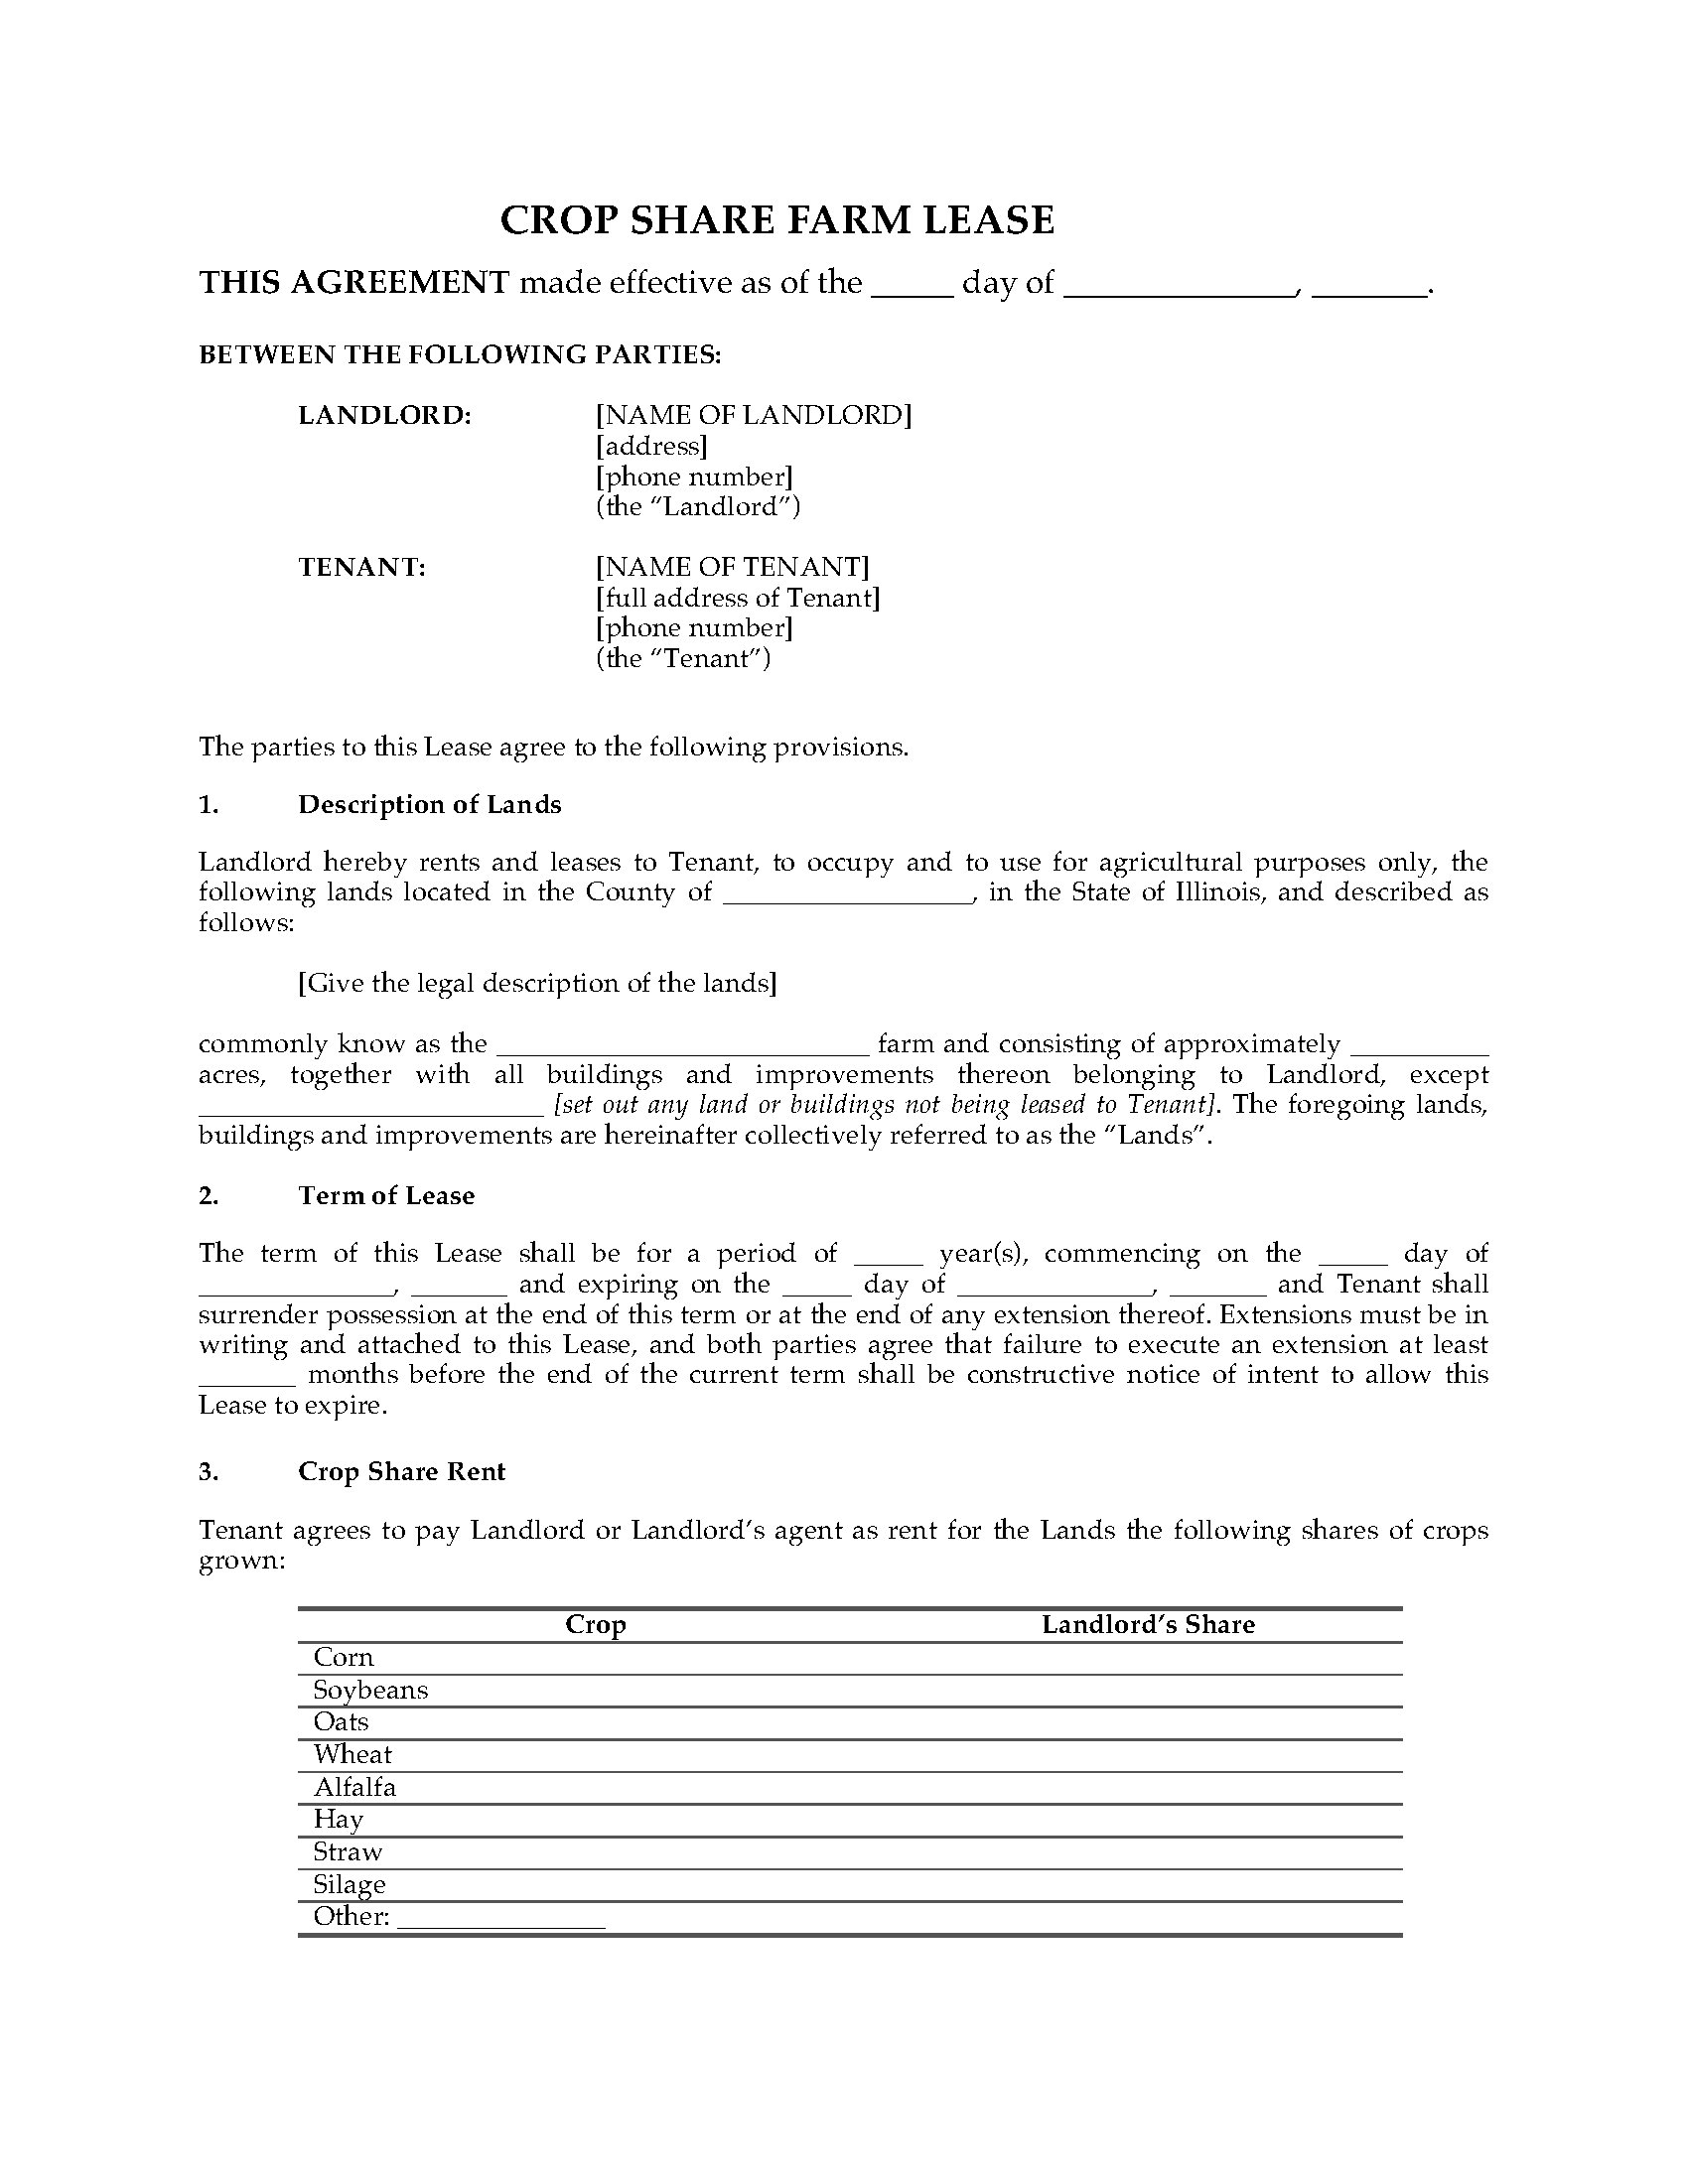 Illinois Farm Lease Forms